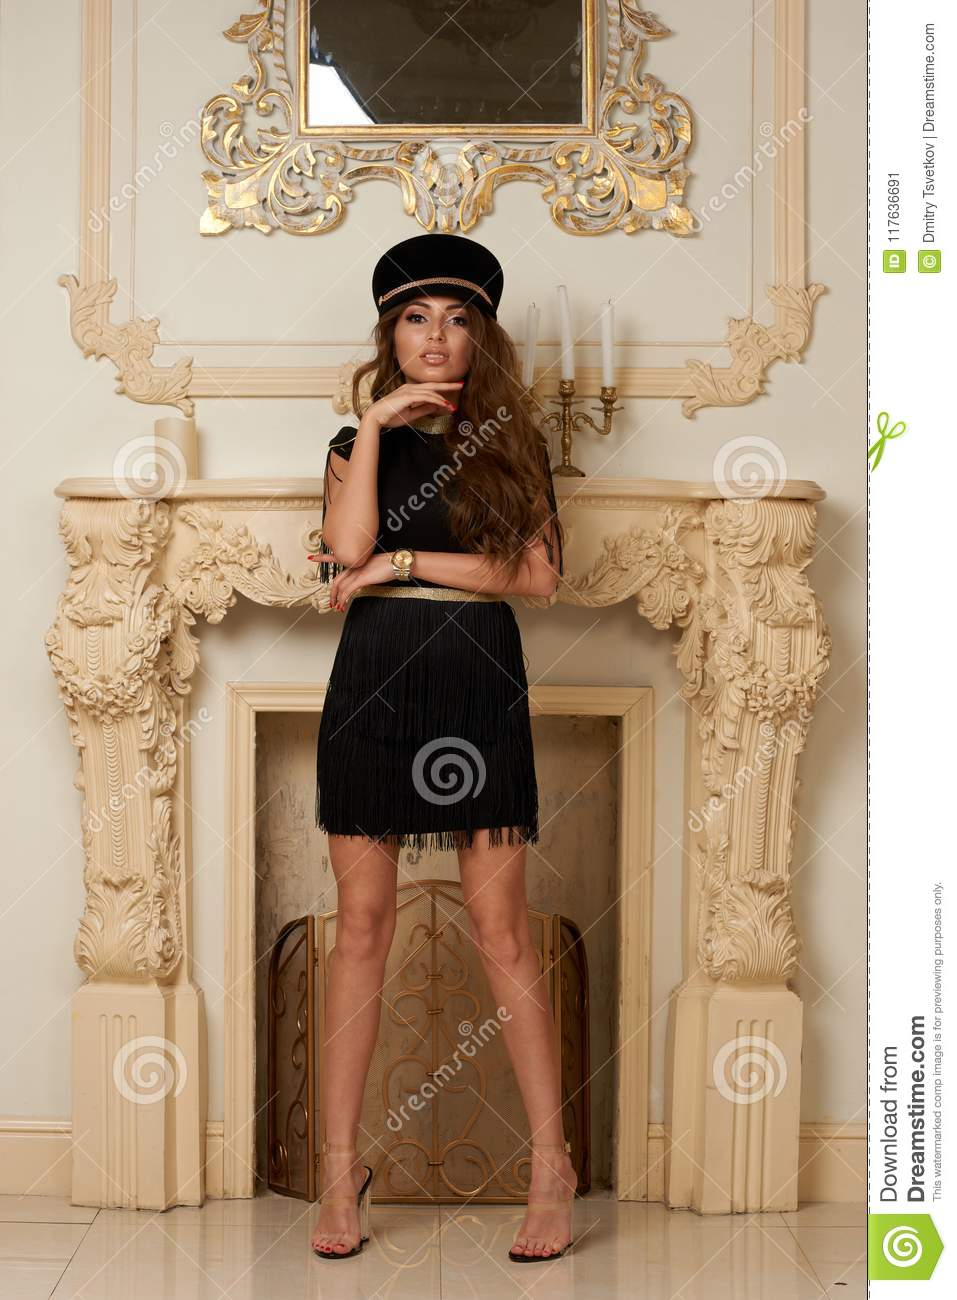 15f490e088d Beautiful stylish slim tall tanned young woman in short black dress and cap  posing in luxury interior